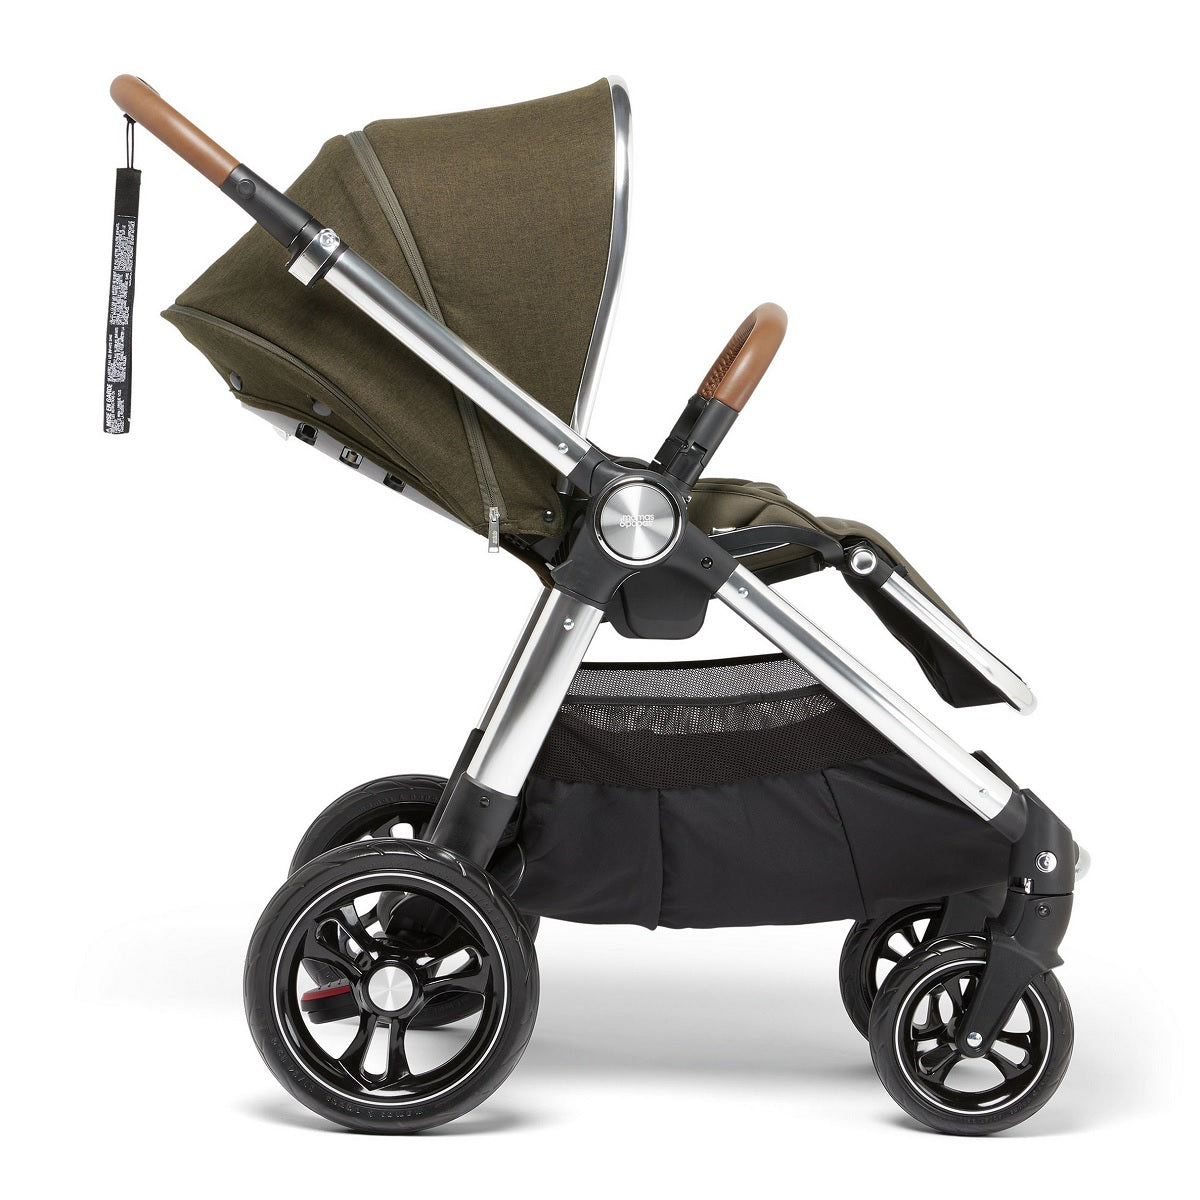 1357a5958c55d Mamas & Papas Ocarro Explorer Stroller in Khaki side view